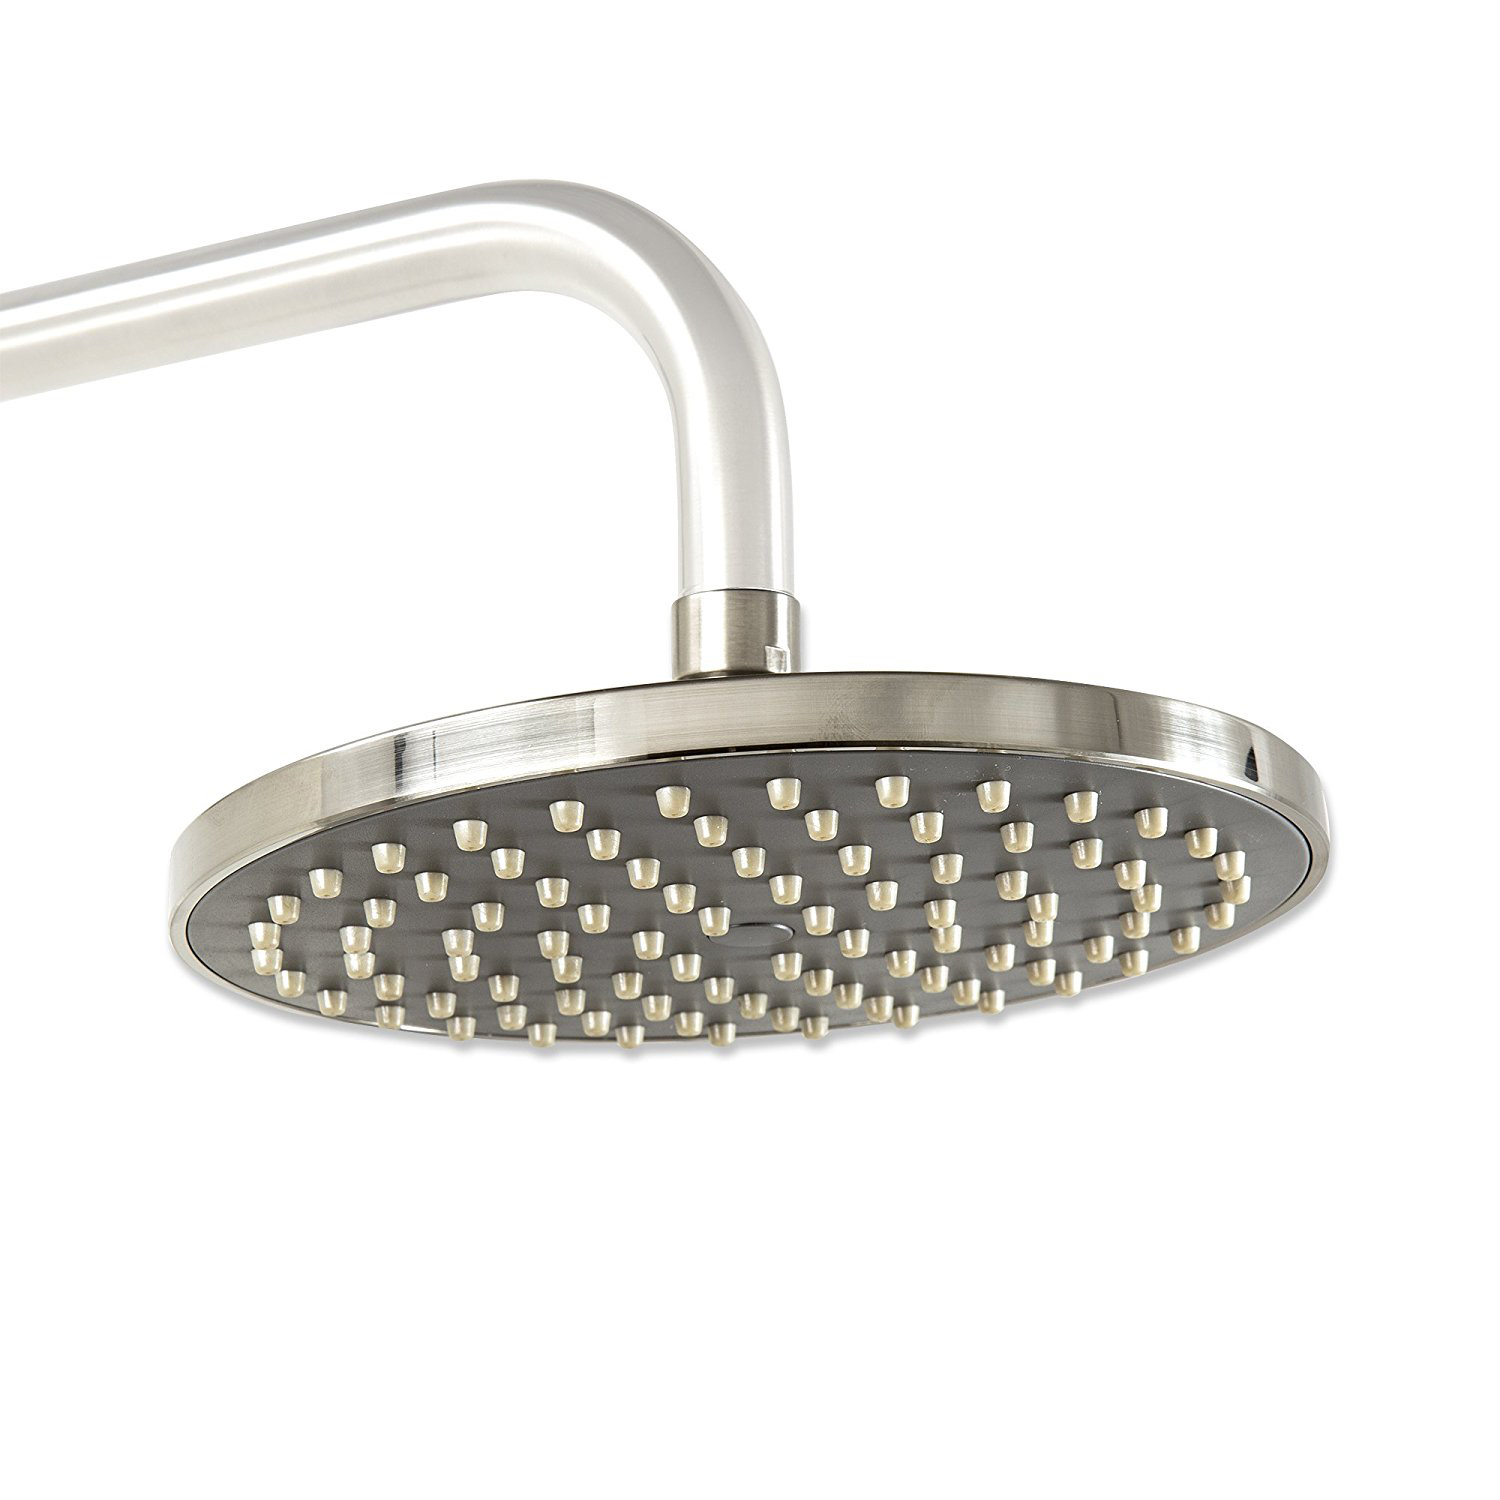 "Tunas 7.5"" Rainfall Shower Head with 13"" Shower Arm"